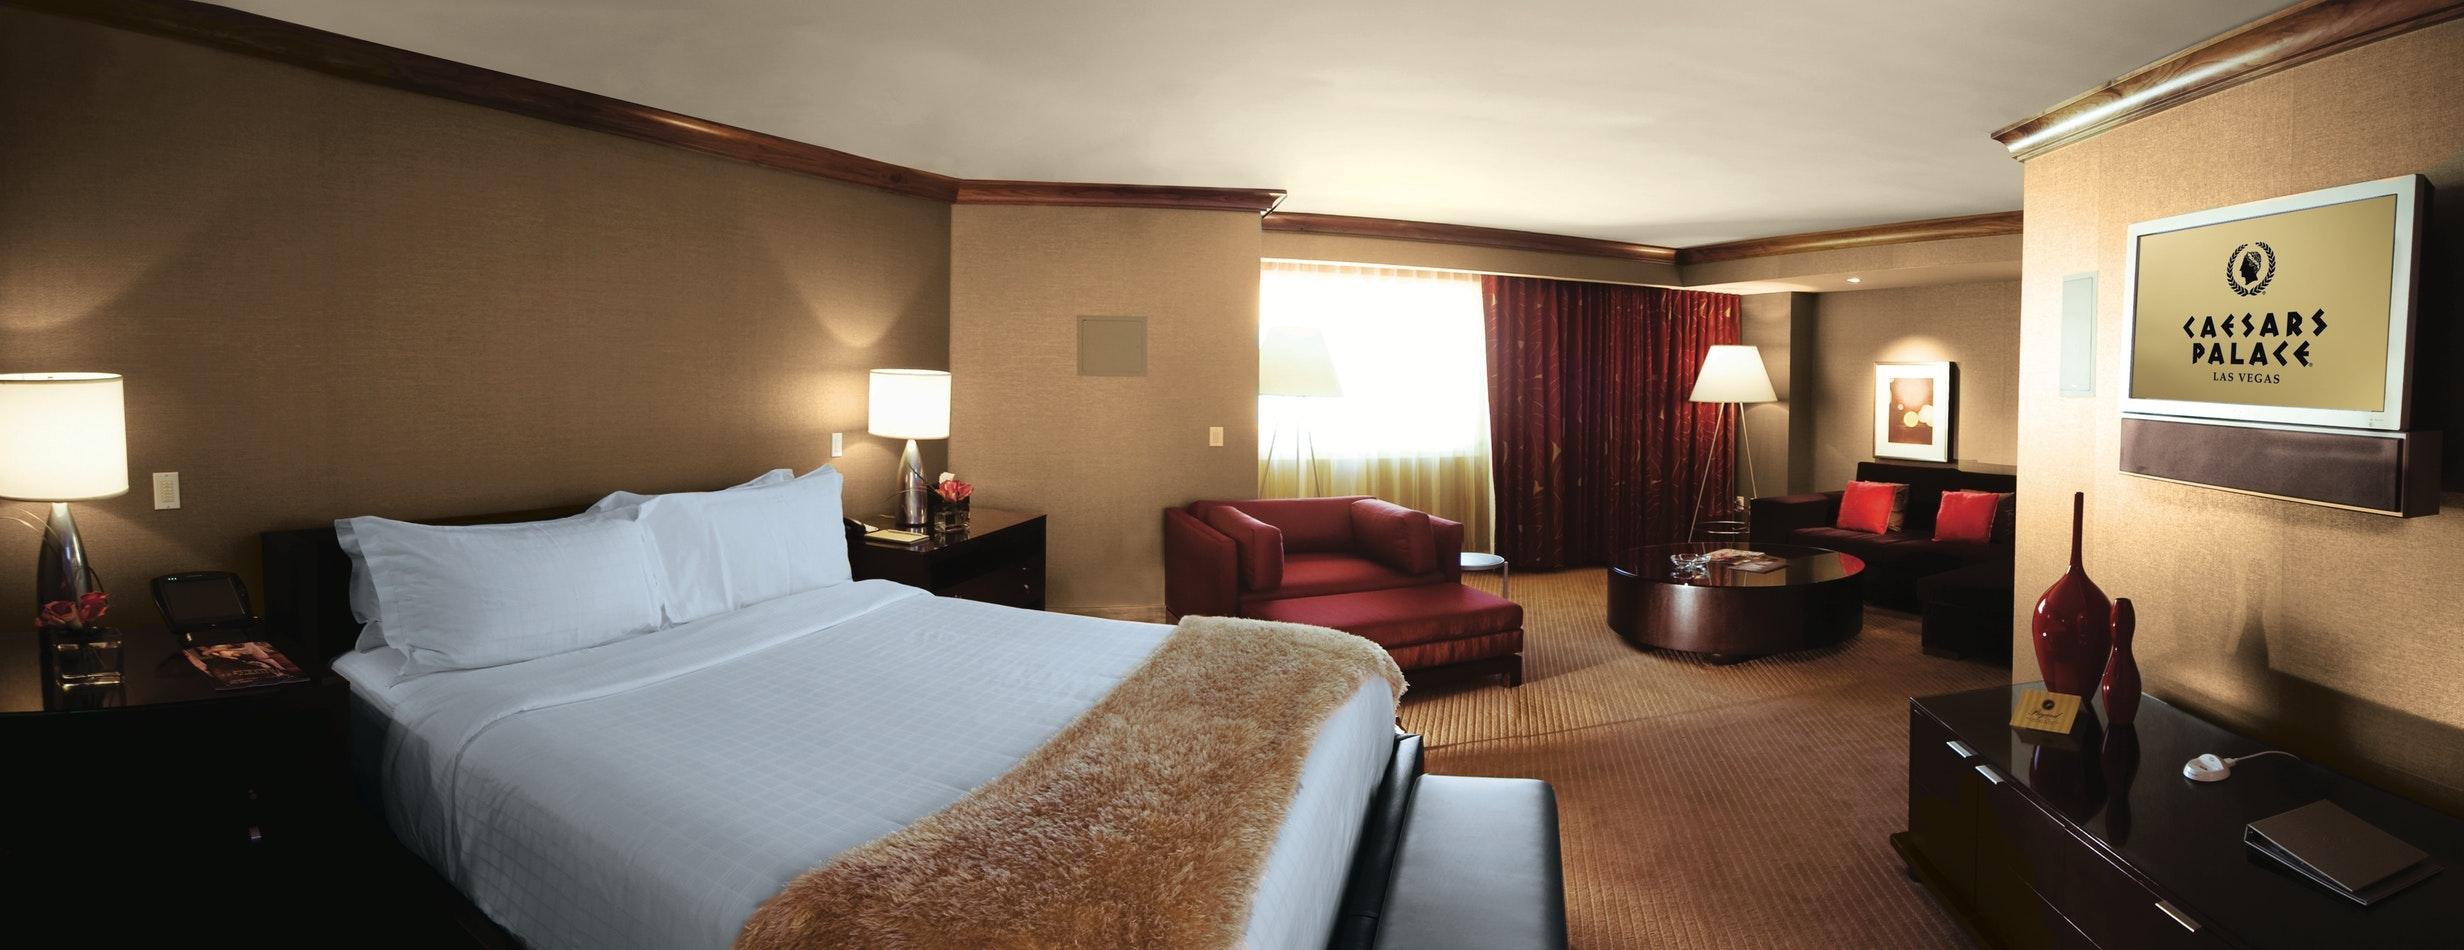 Forum classic emperor suite 2 kings 2 queens 1 king caesars palace suiteness for Caesars palace 3 bedroom suite